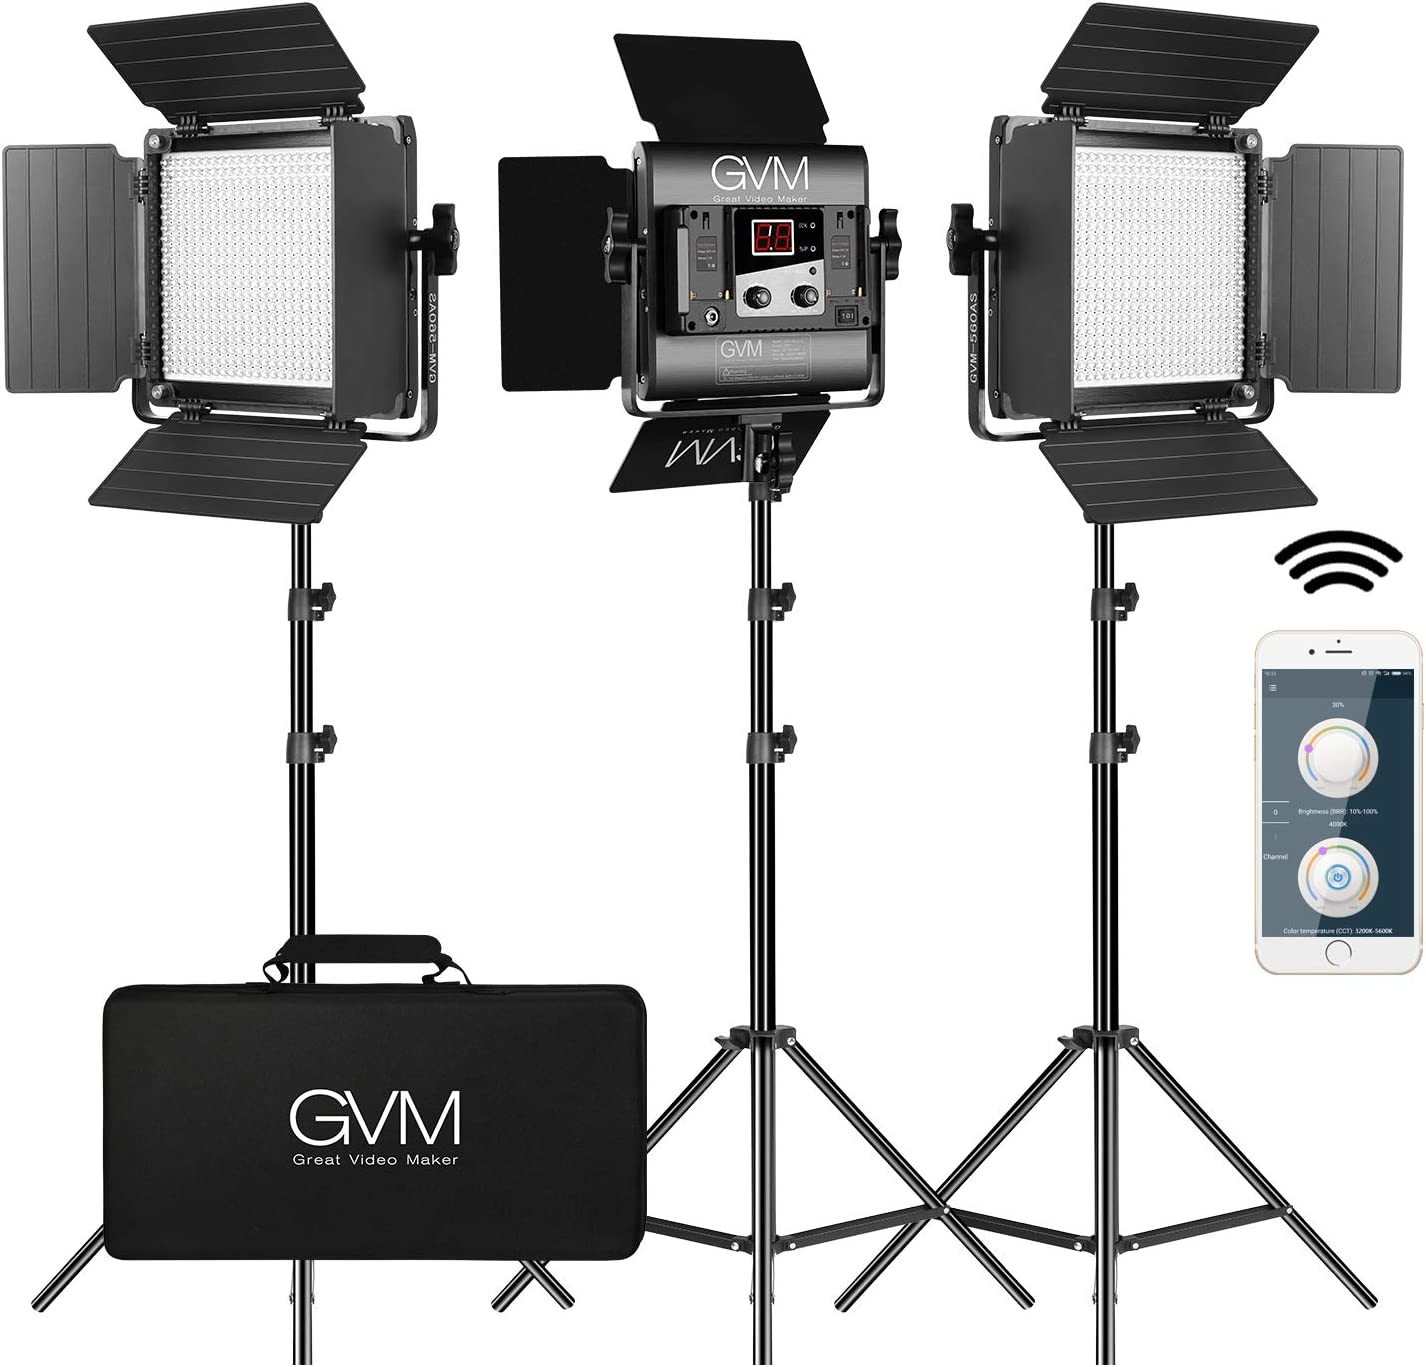 Amazon Com Gvm 560 Led Video Light Dimmable Bi Color 3 Packs Photography Lighting With App Intelligent Control System Lighting For Youtube Studio Outdoor Video Lighting Kit 2300k 6800k Cri 97 Camera Photo